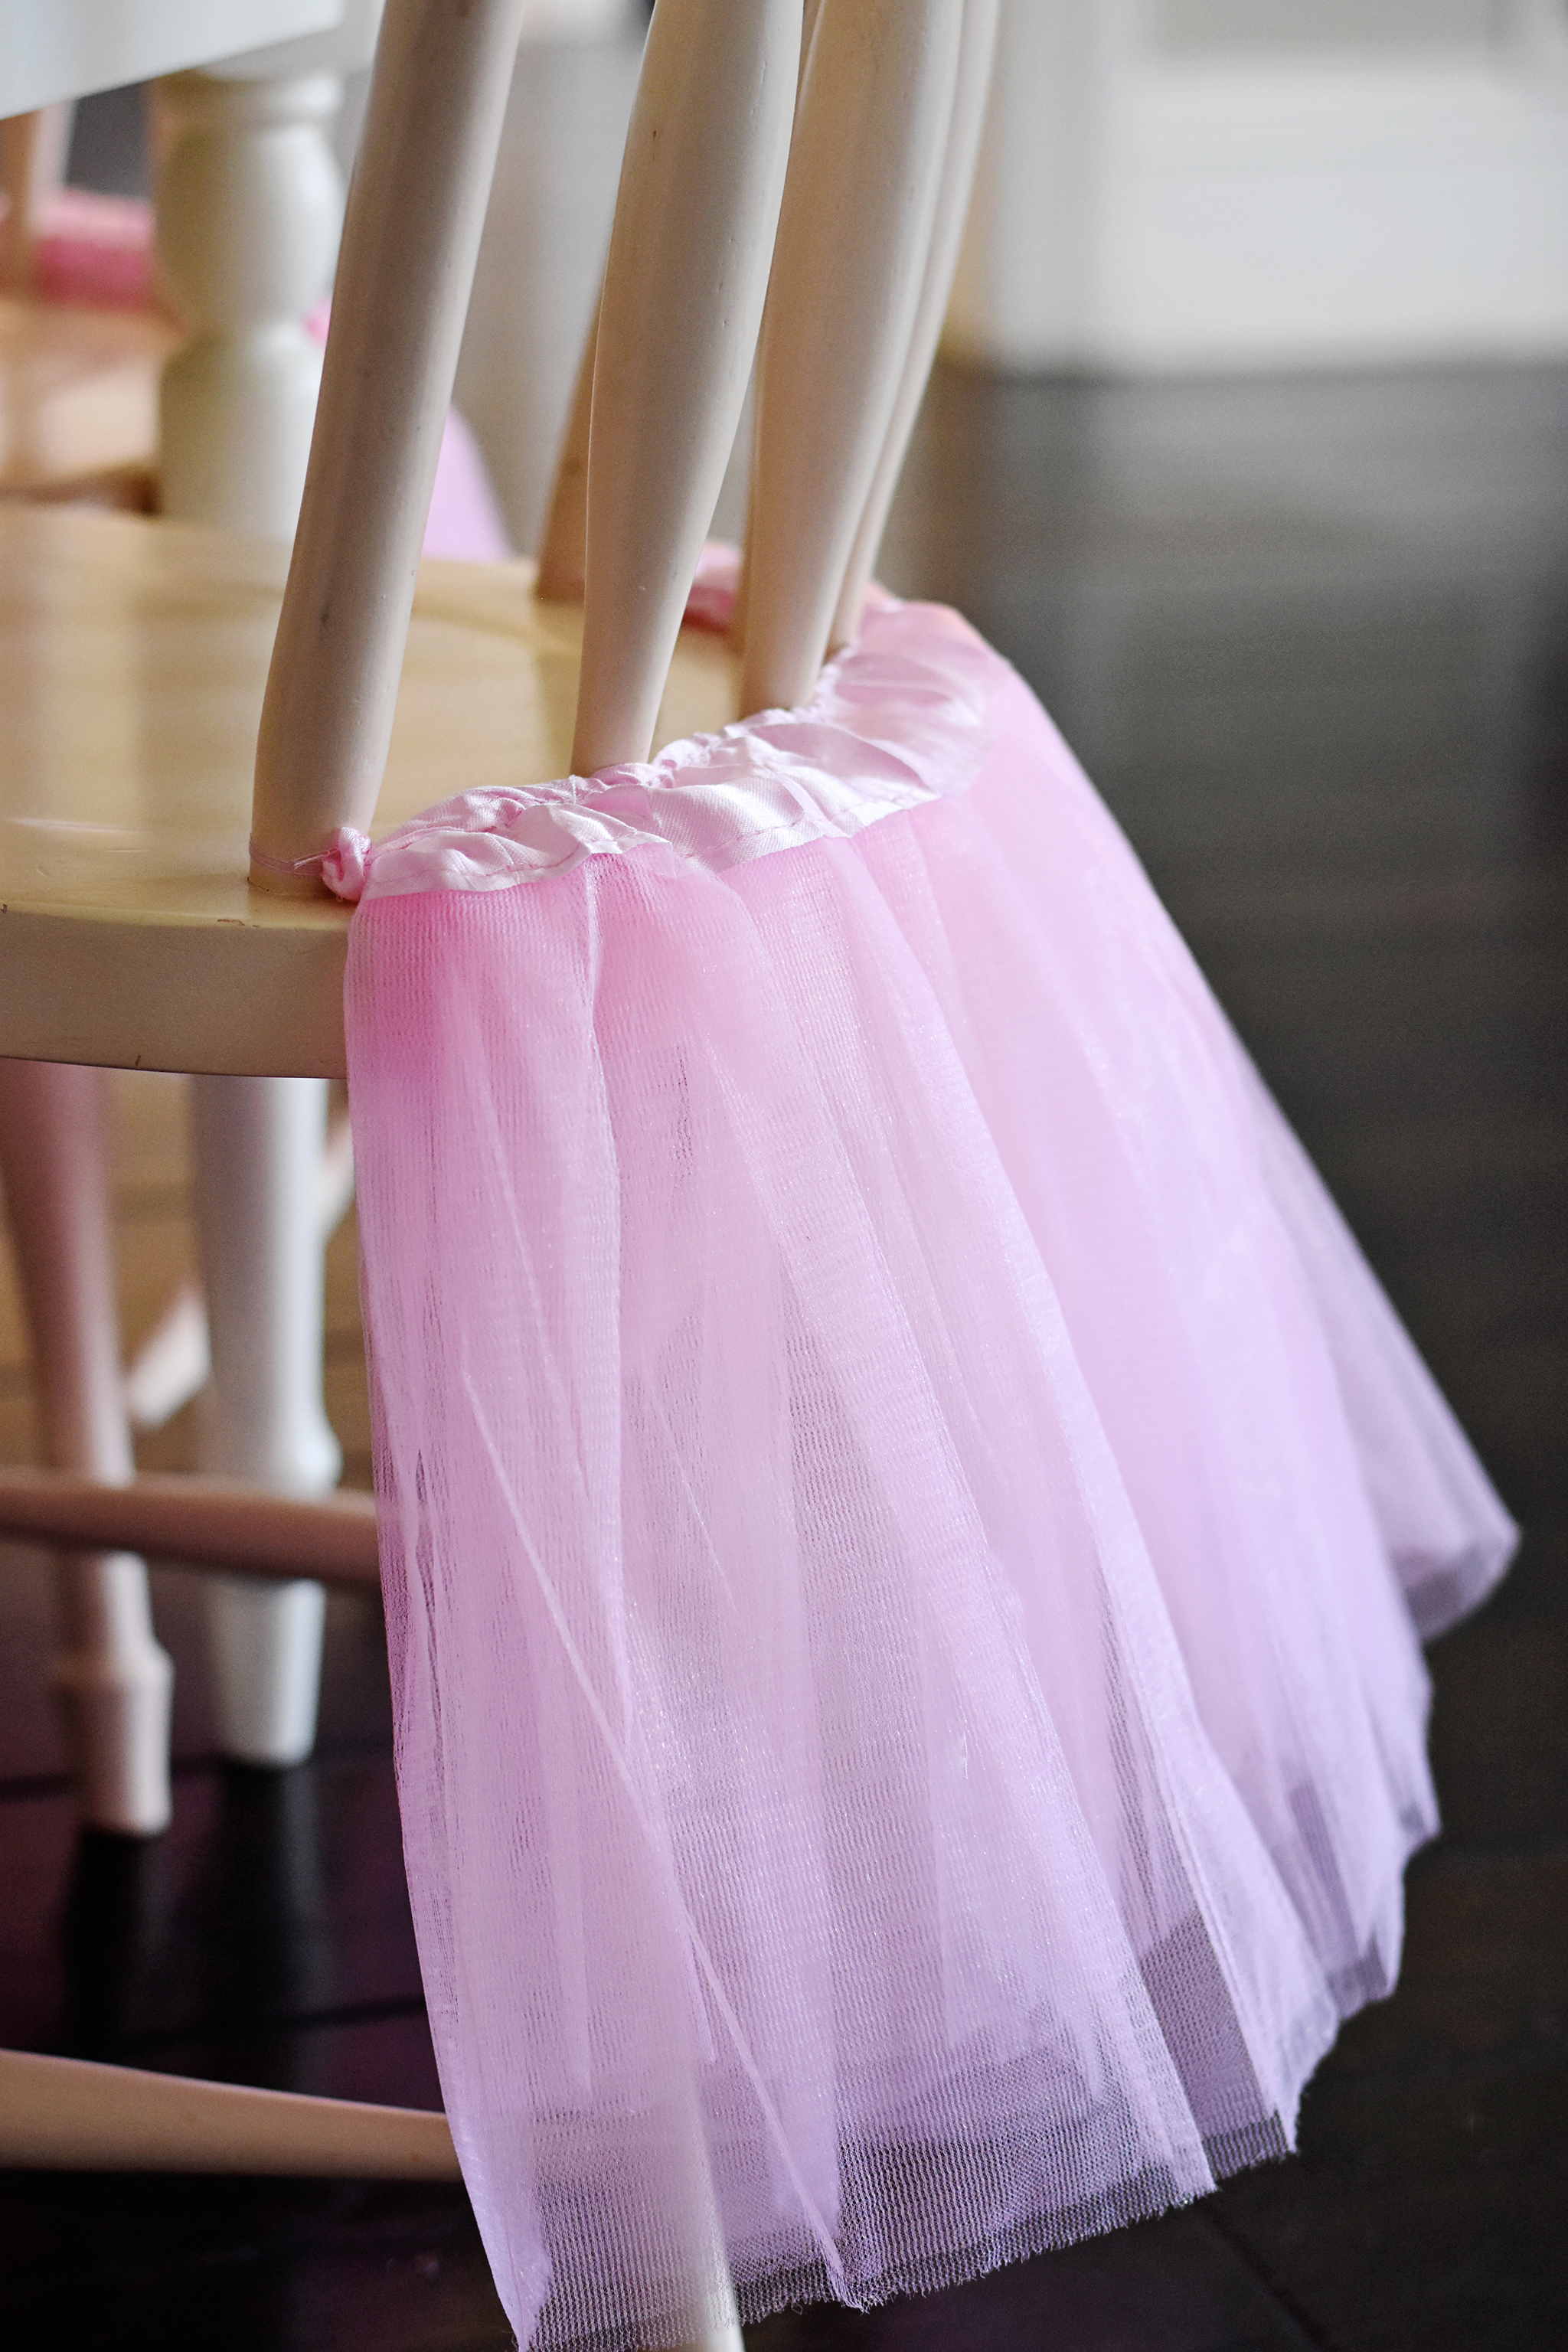 Dress up plain chairs with inexpensive pink tutu skirts!